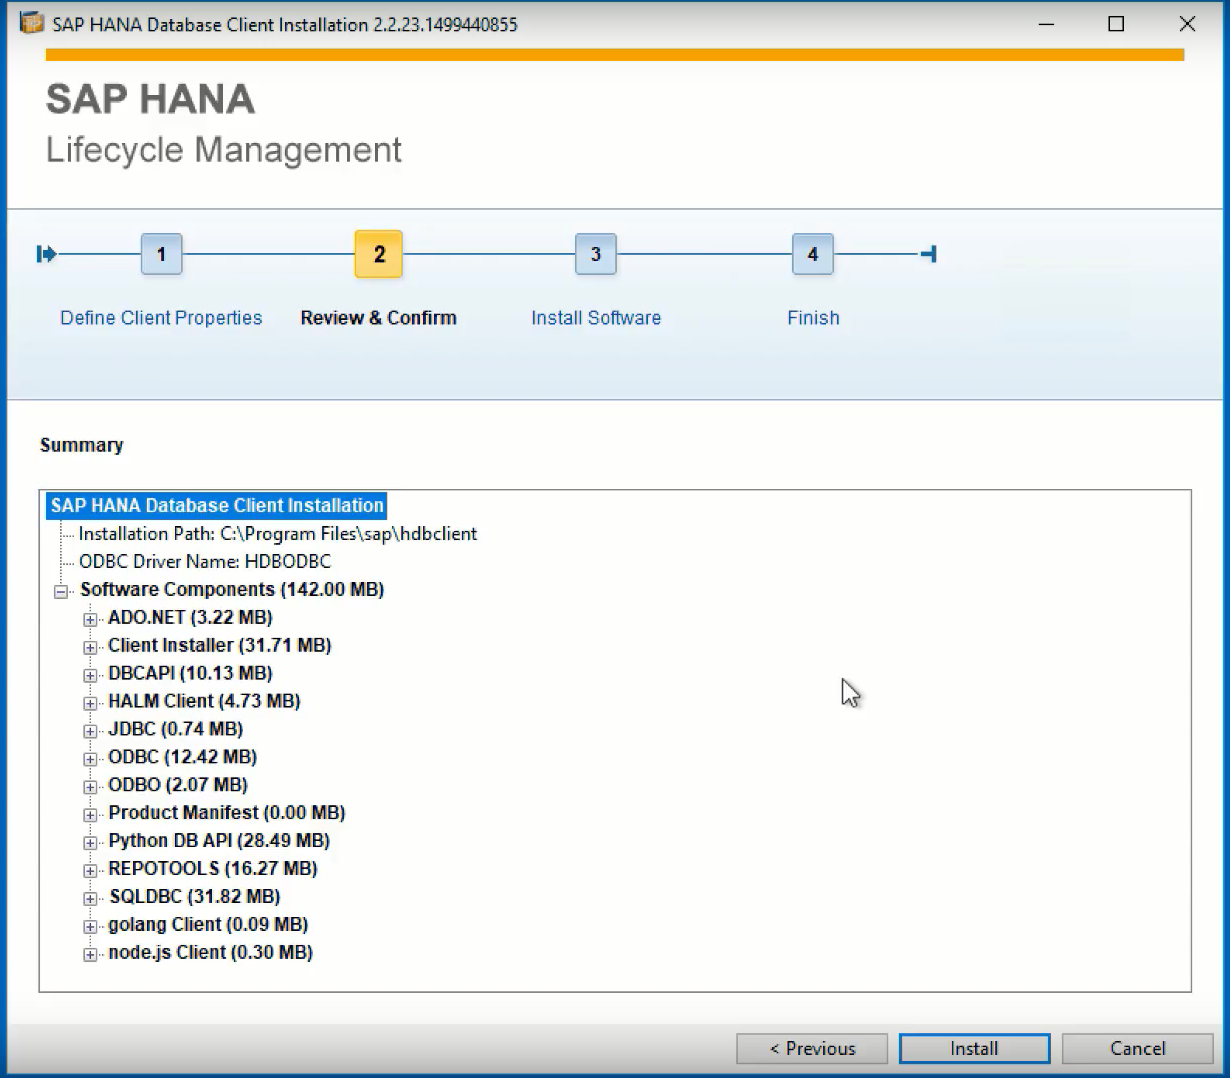 Sap hana 20 client installation and update by the sap hana the python db api has been included as well from the very early days not as supported database client this was only introduced in the latest sap hana 20 malvernweather Images